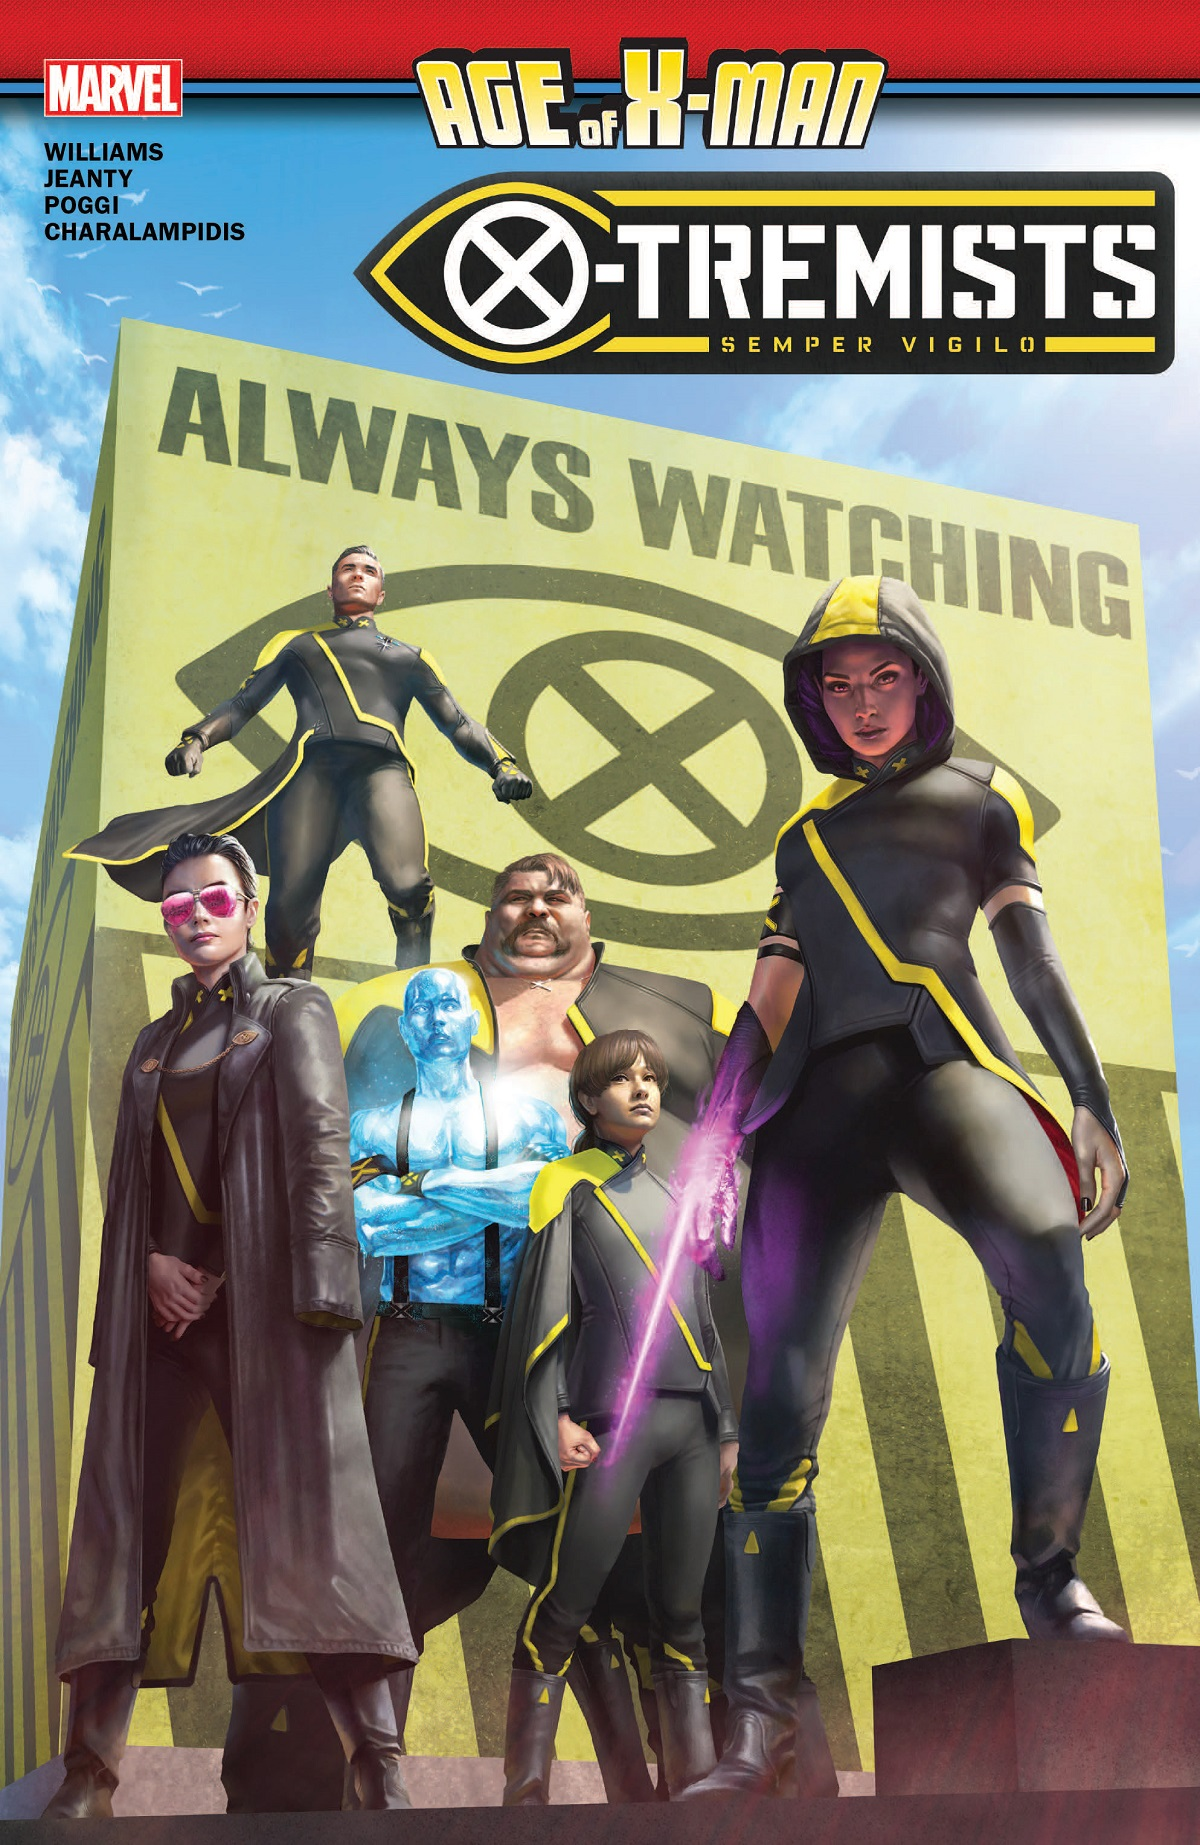 Age Of X-Man: X-Tremists (Trade Paperback)